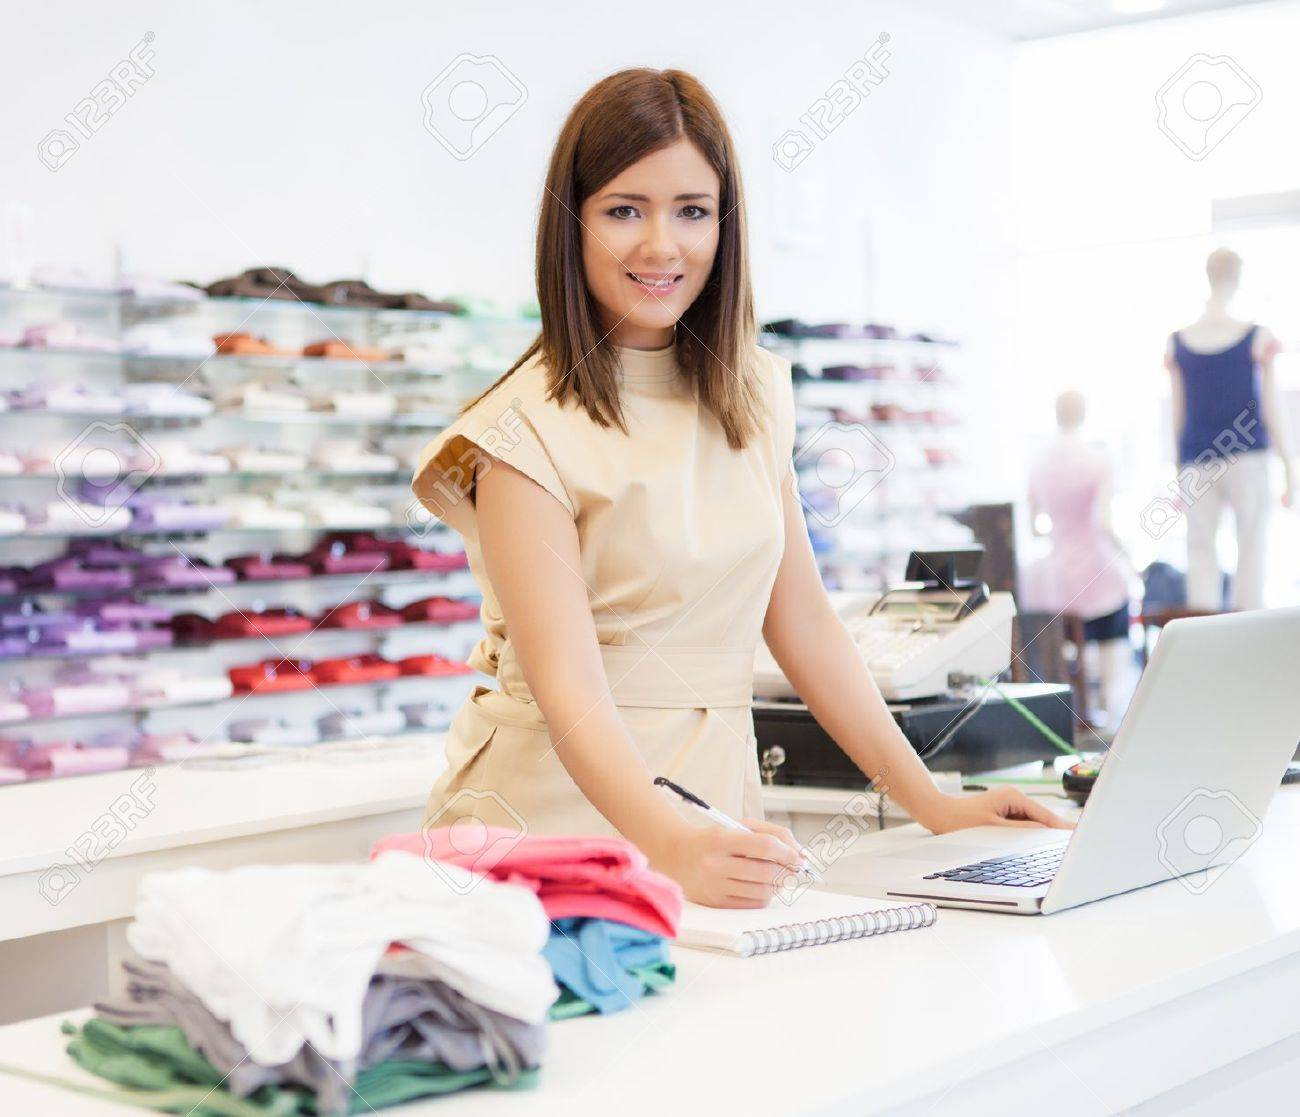 a shop assistant standing at the checkout desk stock photo a shop assistant standing at the checkout desk stock photo 19563812